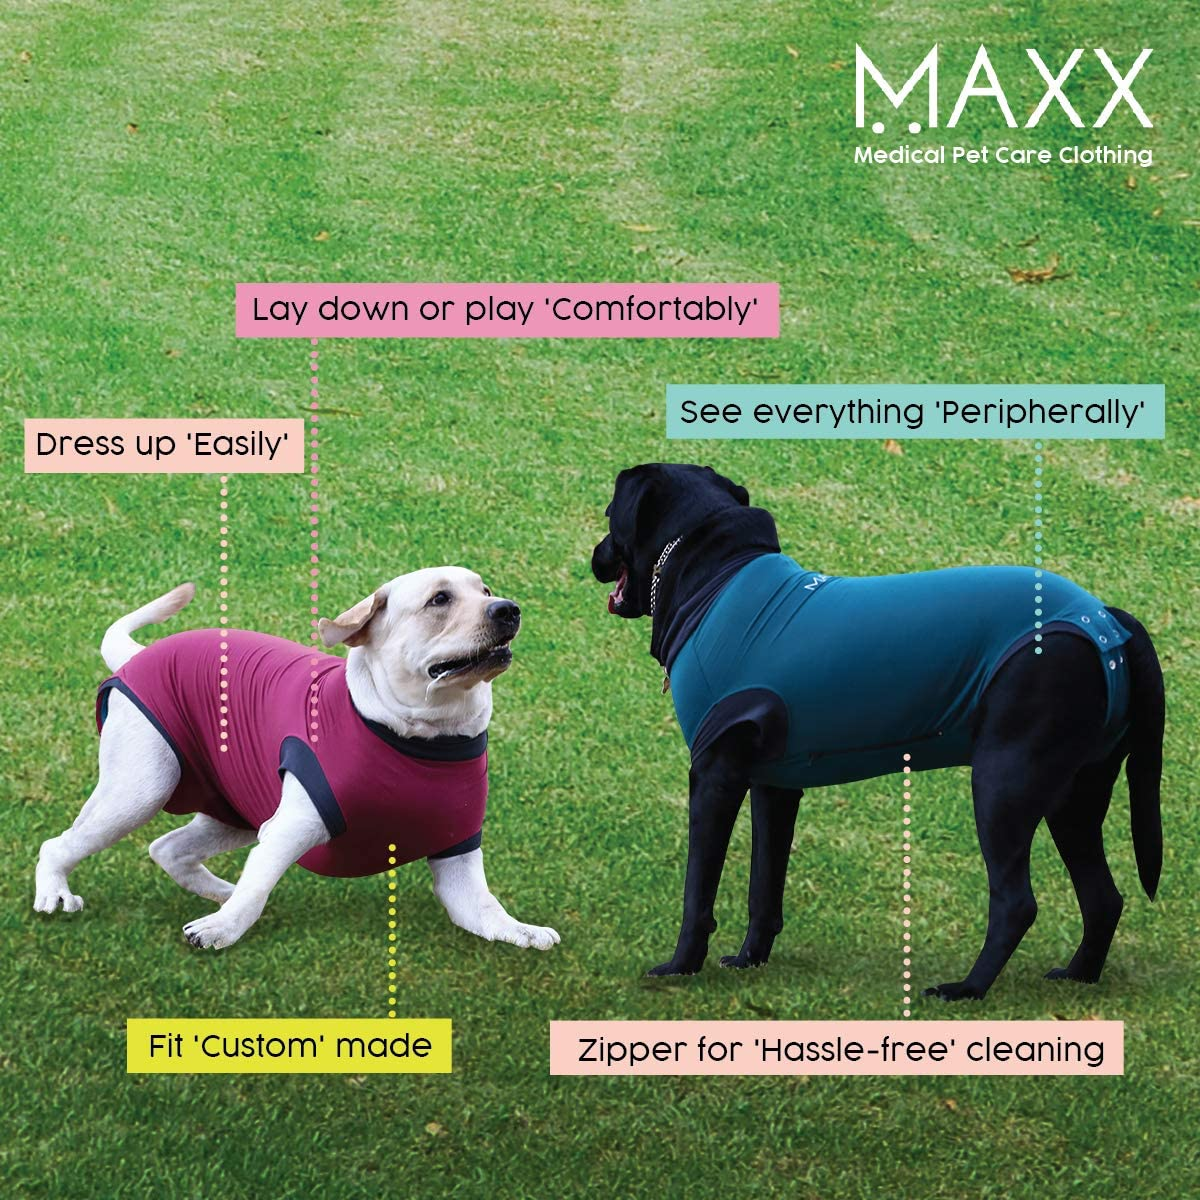 MAXX Dog Recovery Suit Review